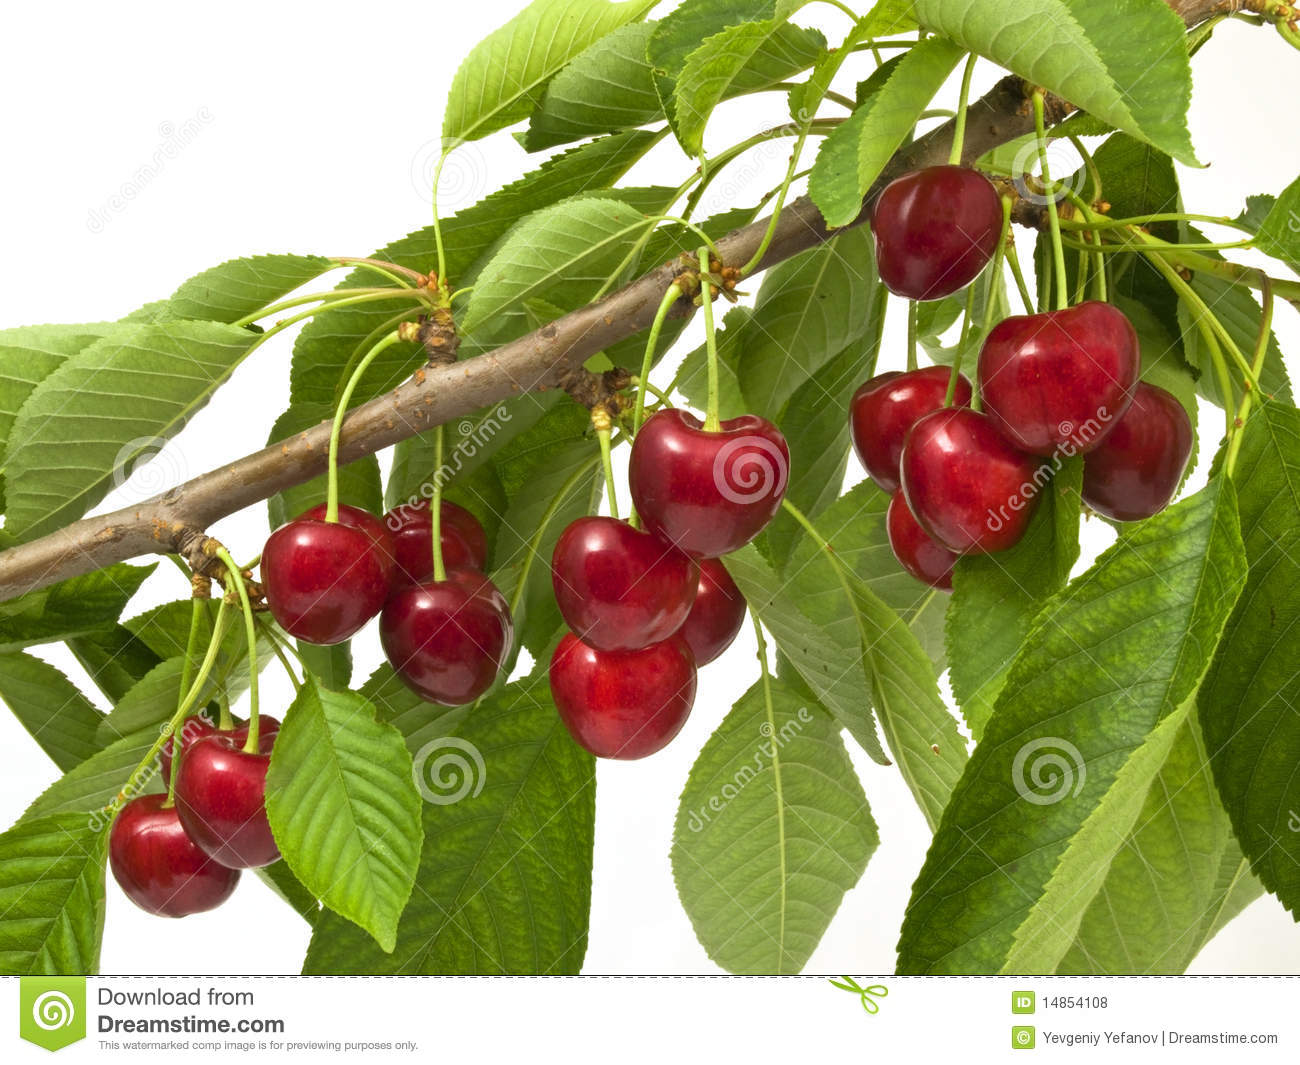 Cherries on the branch of a large